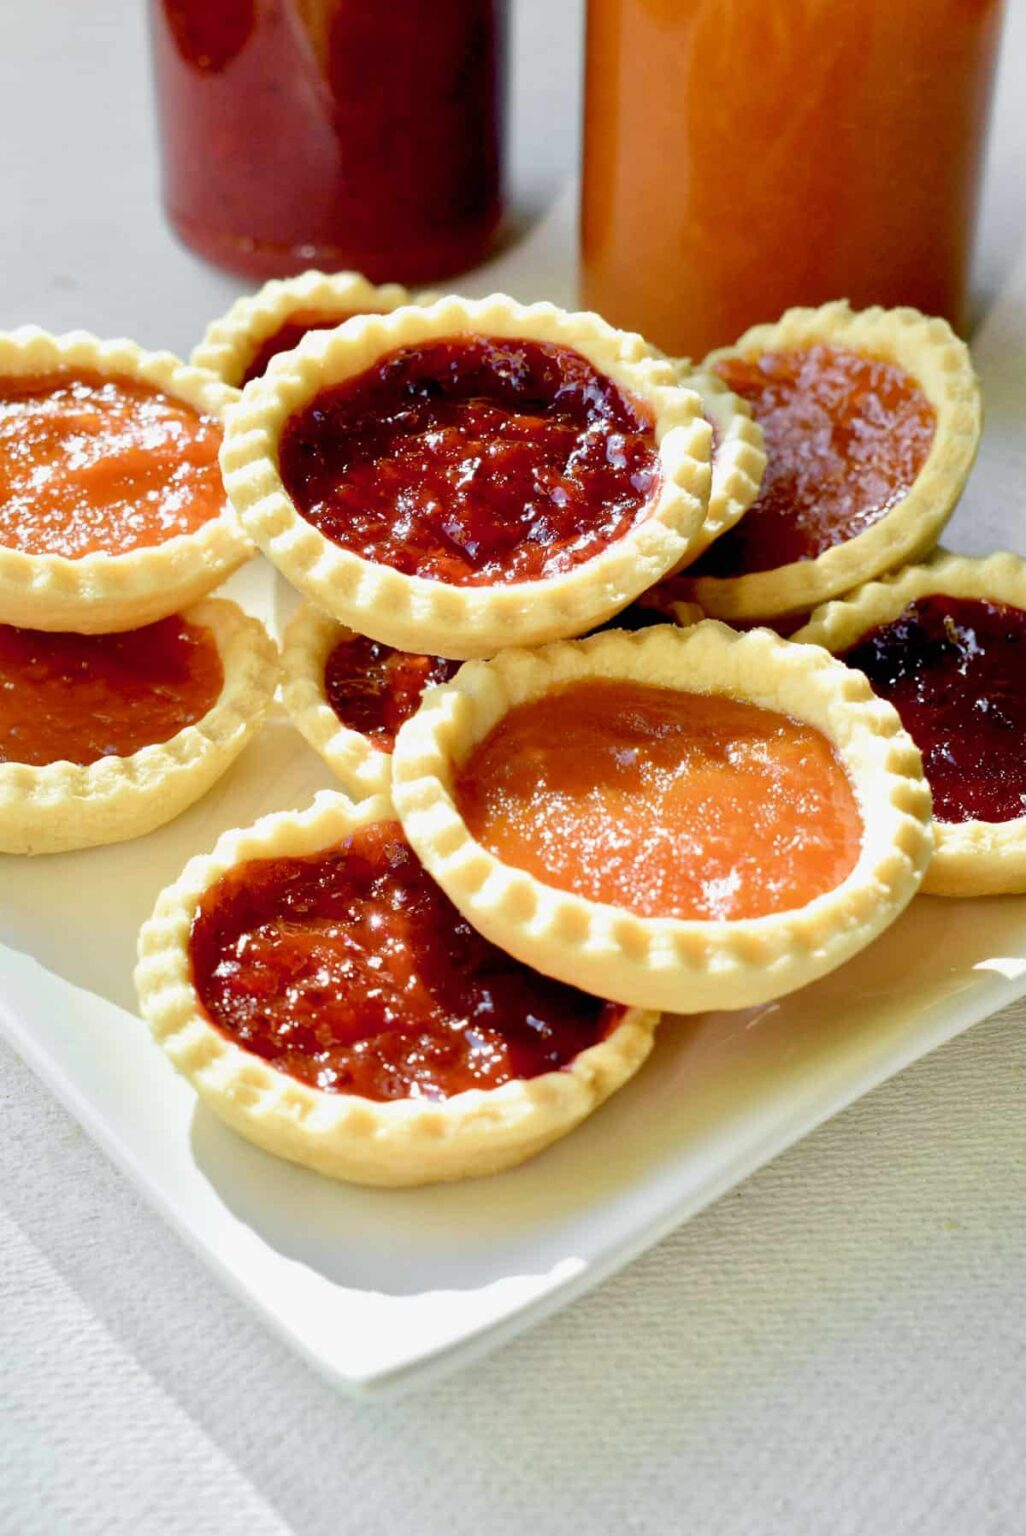 Jam tarts stacked on a white plate.